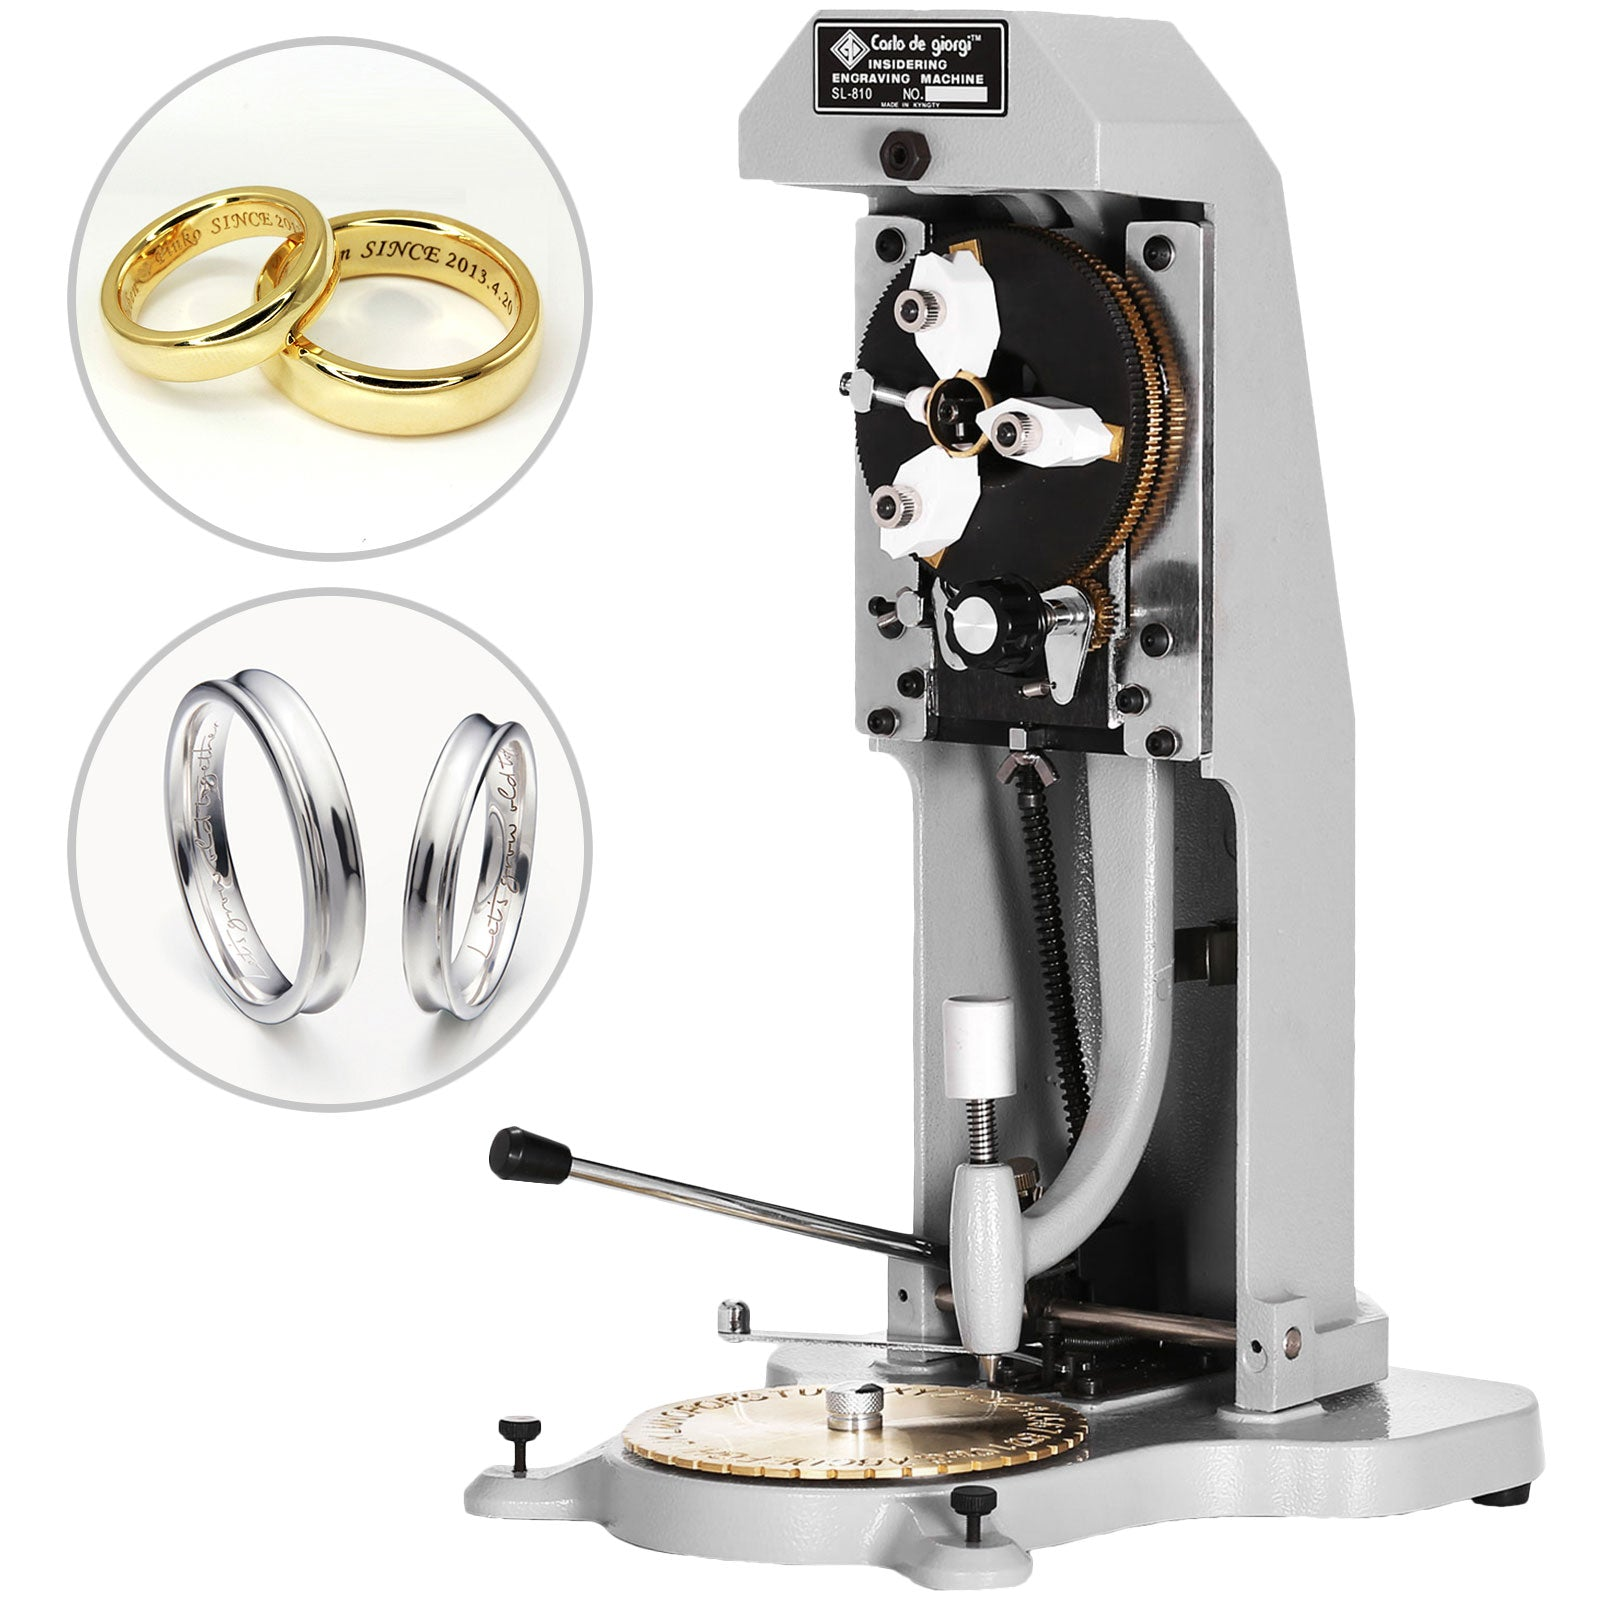 Inside Ring Engraver Engraving Machine Cutter Standard Processing Two Faces